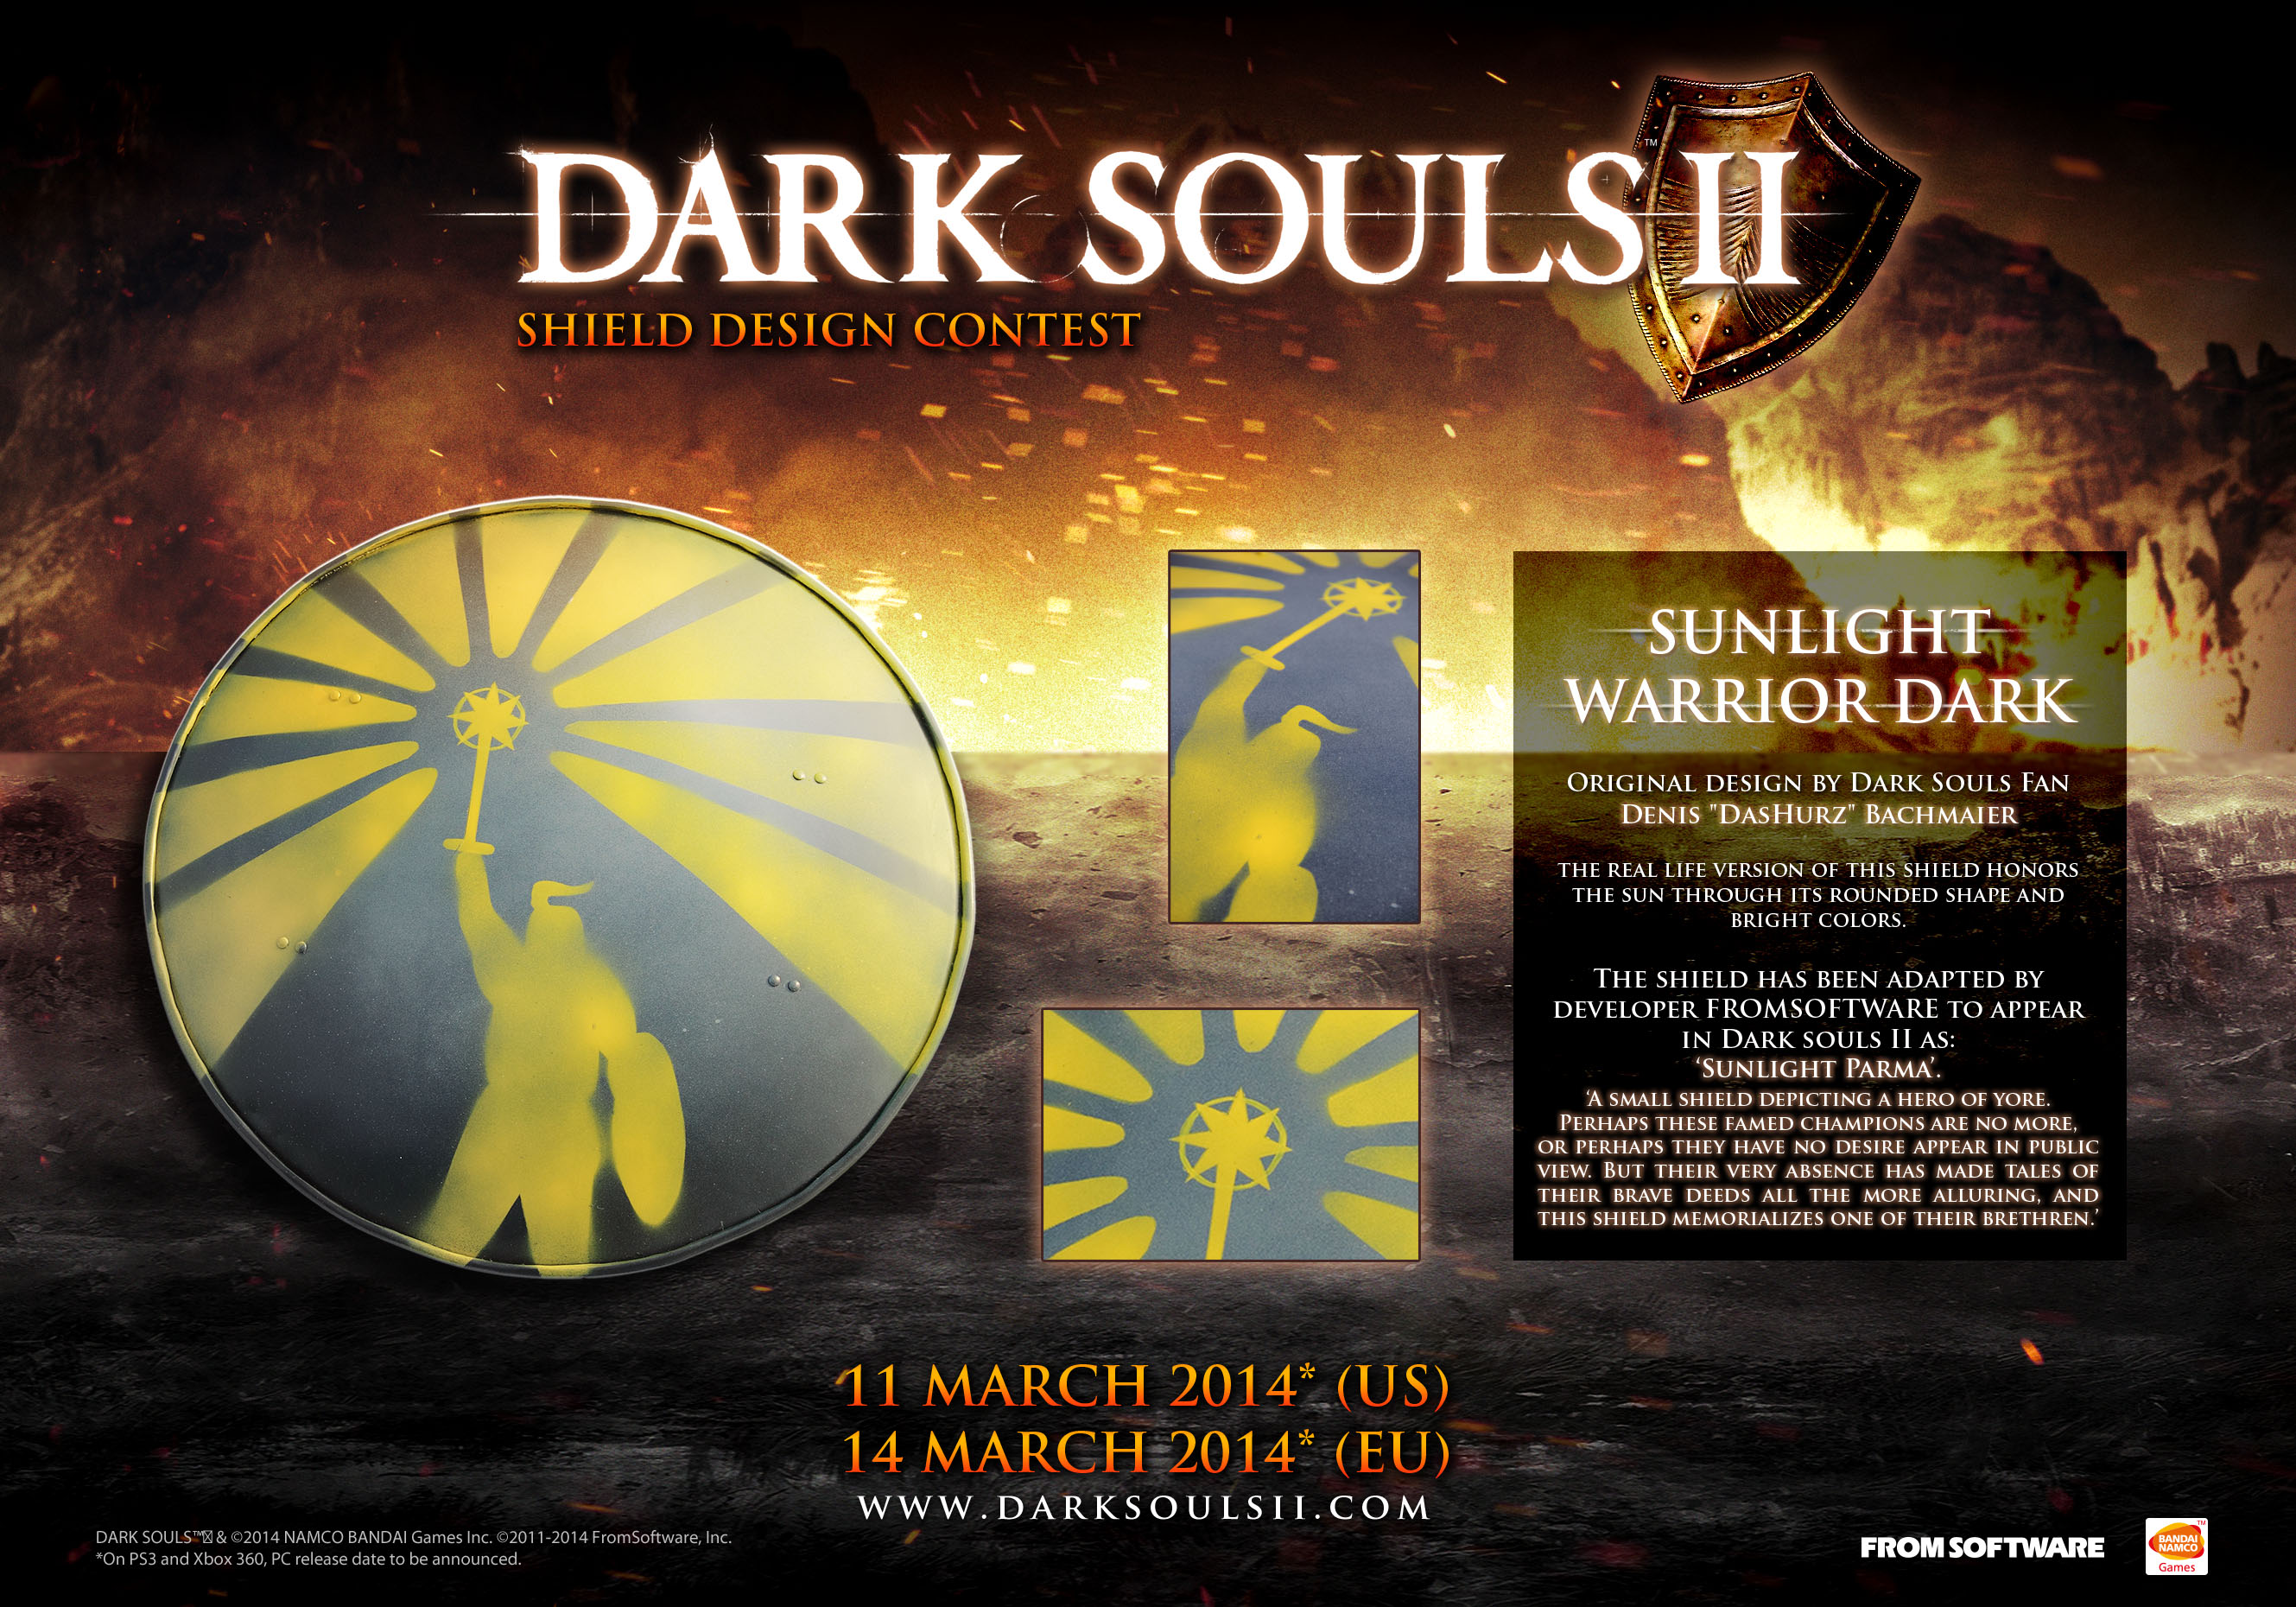 dsii-shield-sunlight-warrior-dark-introduction